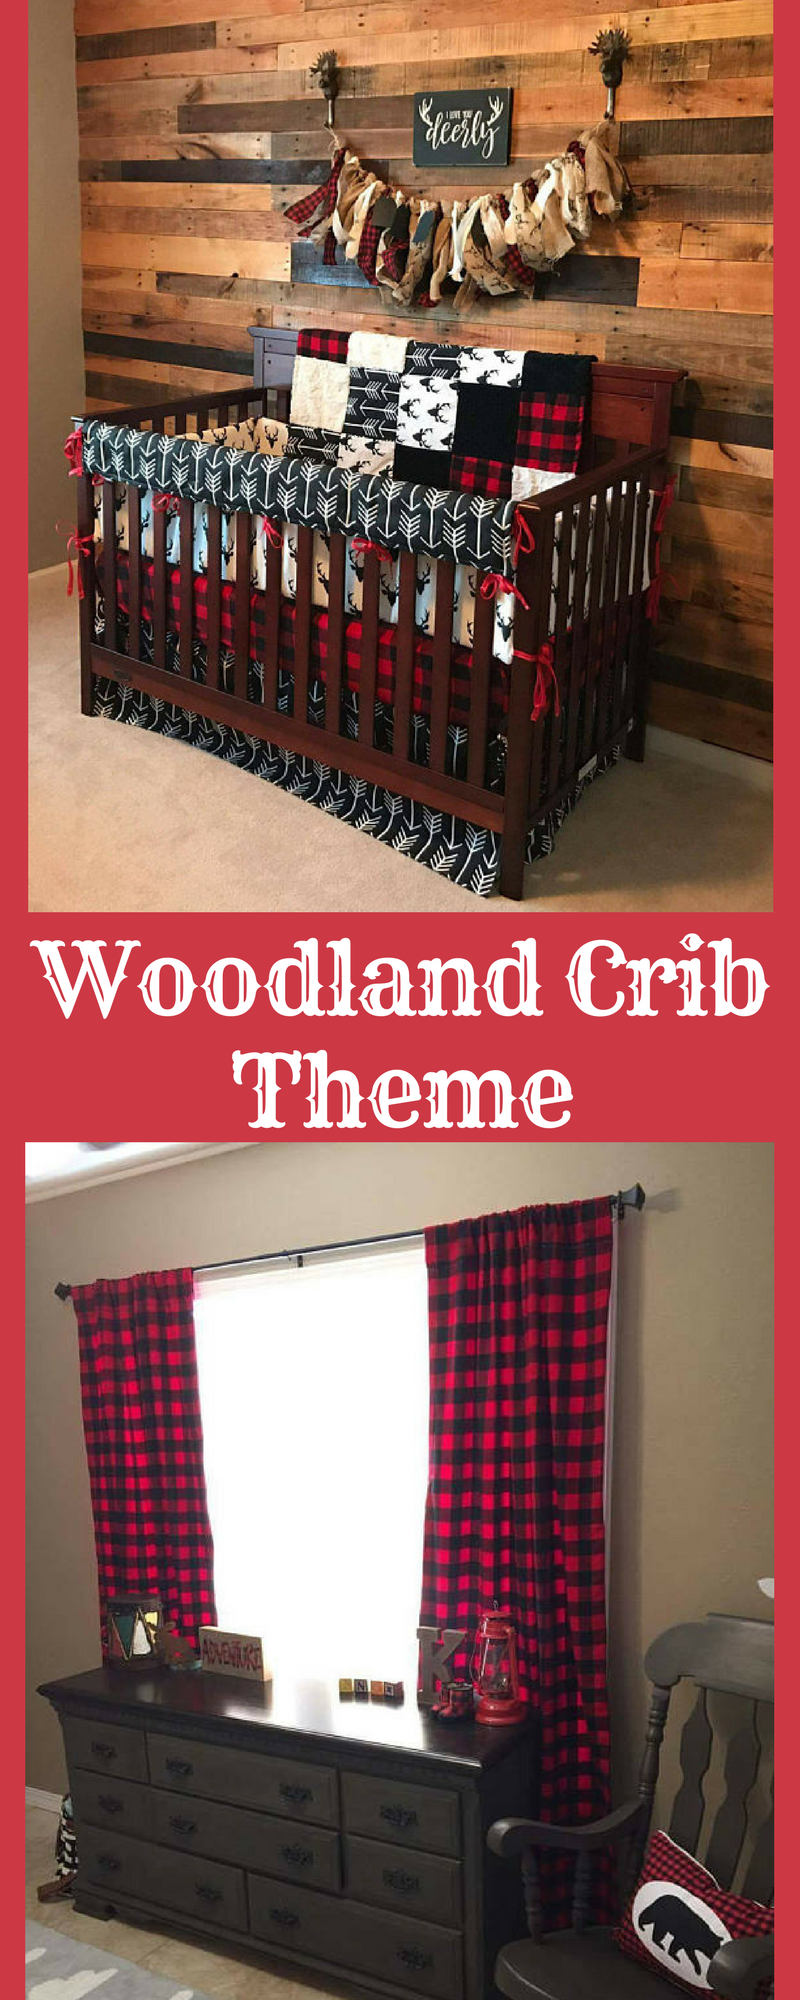 I love this for a baby boy's room! Black antler/woodland theme is very popular right now! What a great set this is. #ad #babyboy #woodlandtheme #lumberjack #blackantler #buffalocheck #cribbedding #babyroomdecor